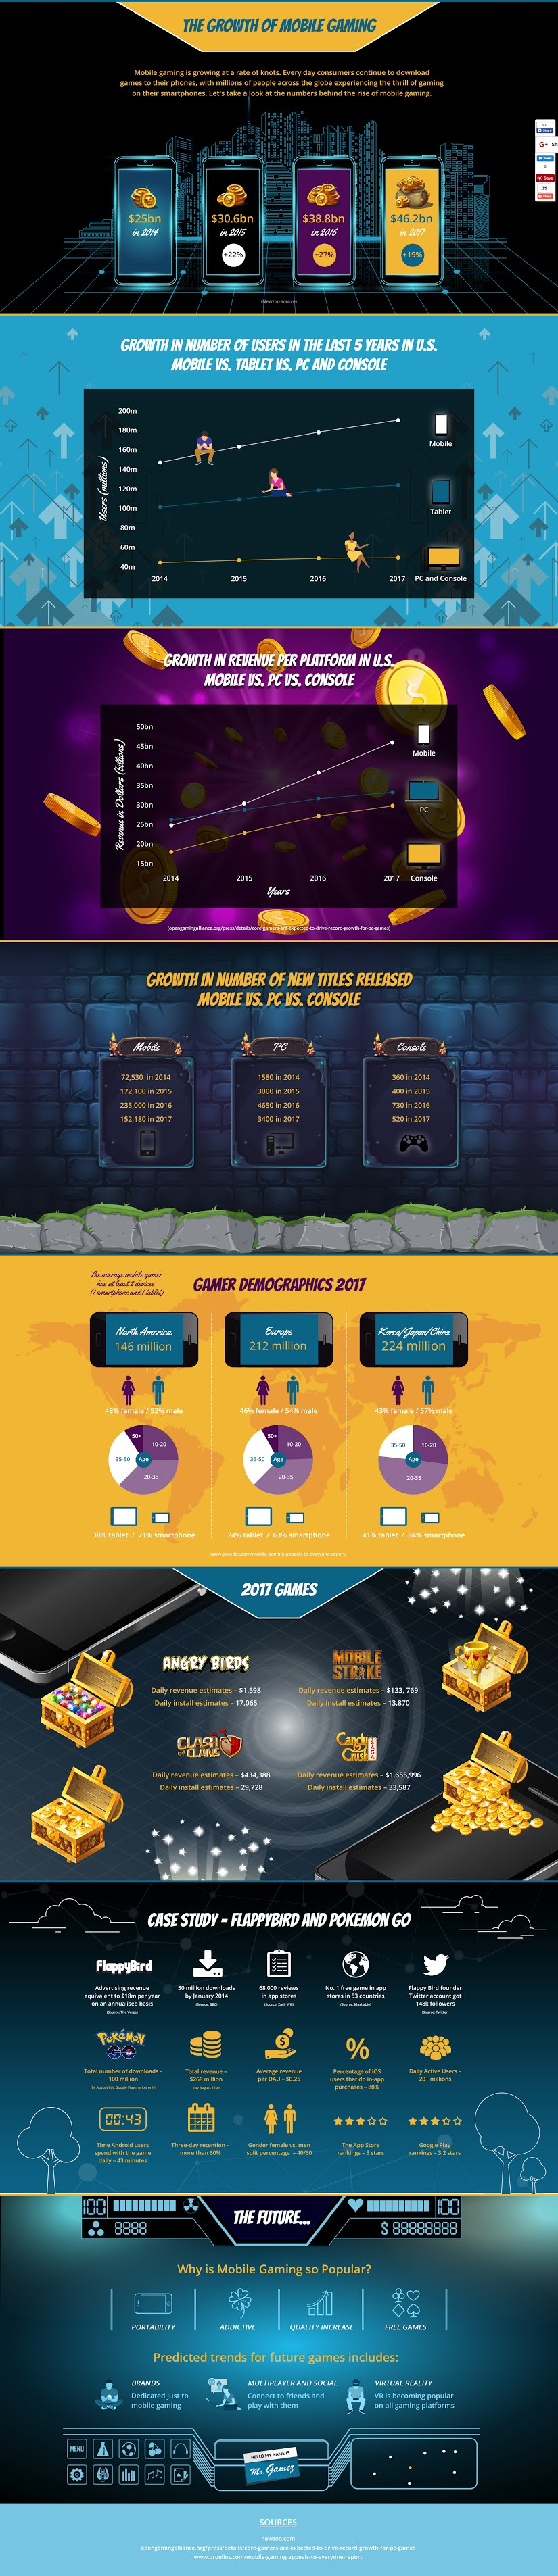 The Growth Of Mobile Gaming #infographic